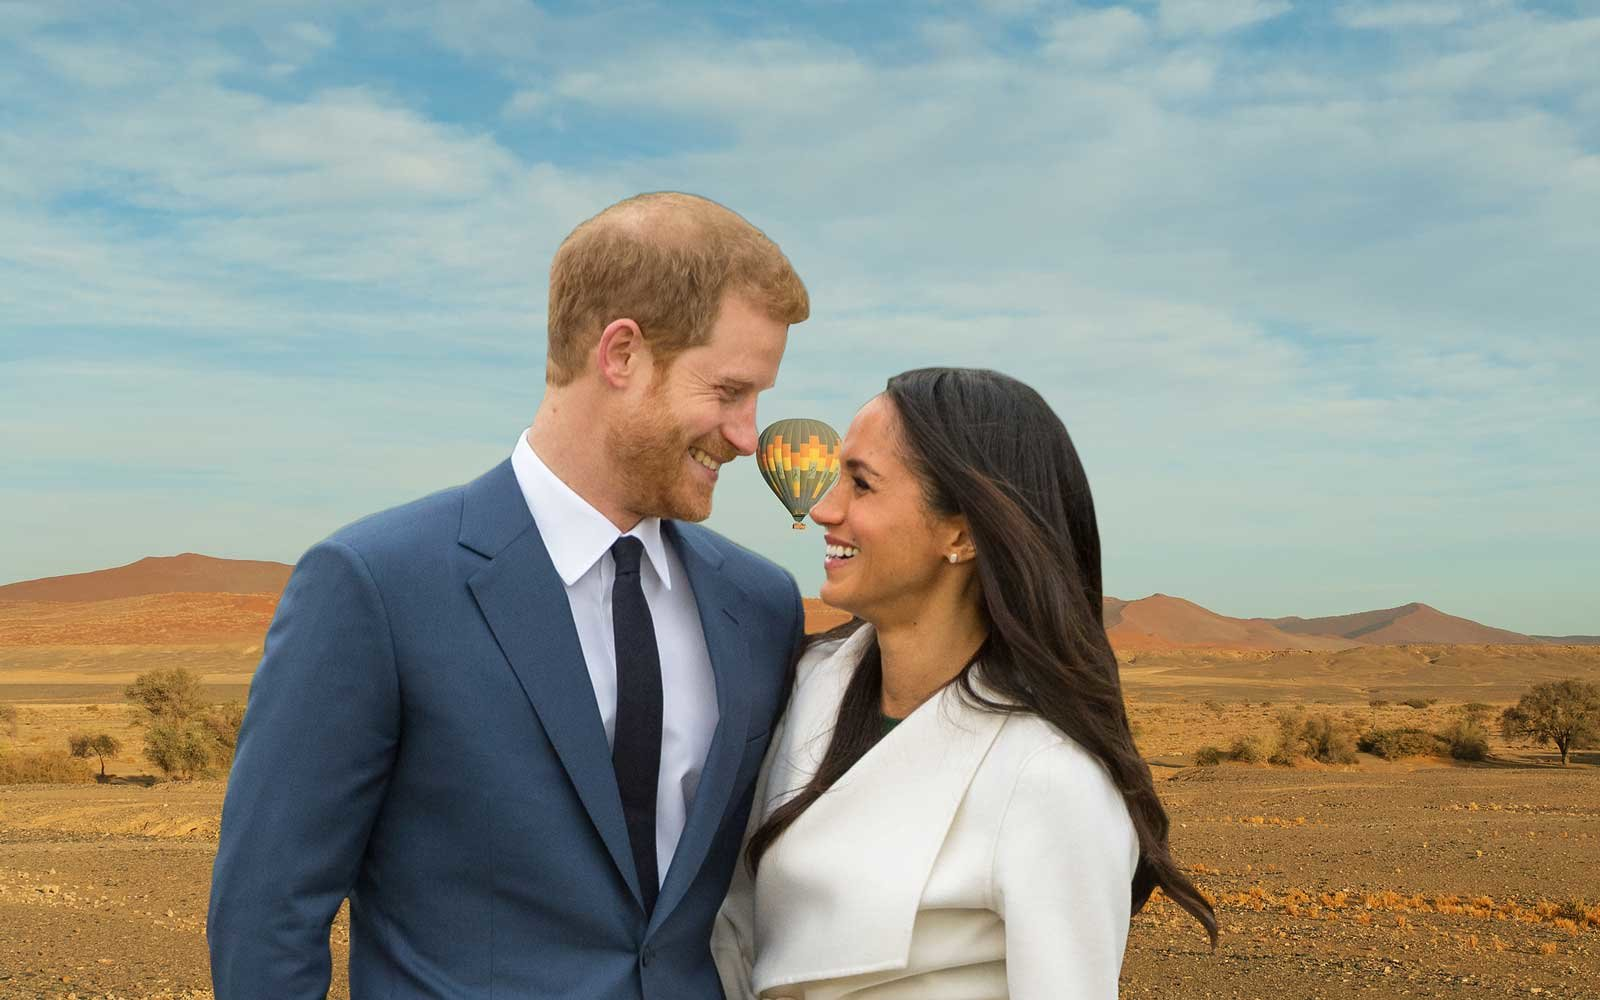 Where are Prince Harry and Meghan Markle going on their honeymoon?